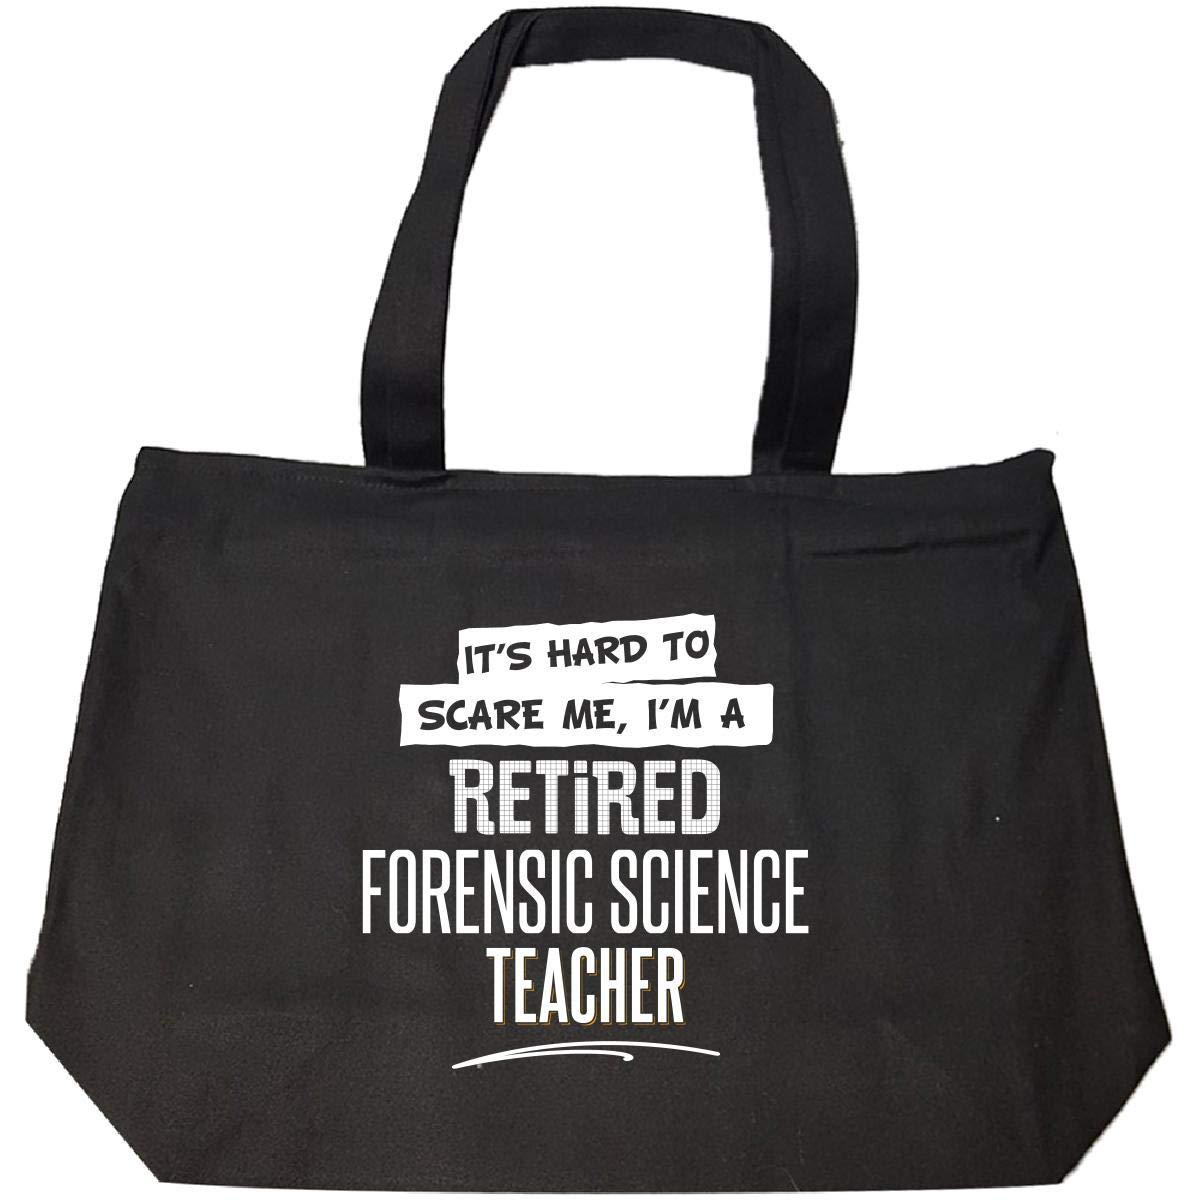 Gift For A Retired Forensic Science Teacher Hard To Scare Me - Tote Bag With Zip by My Family Tee